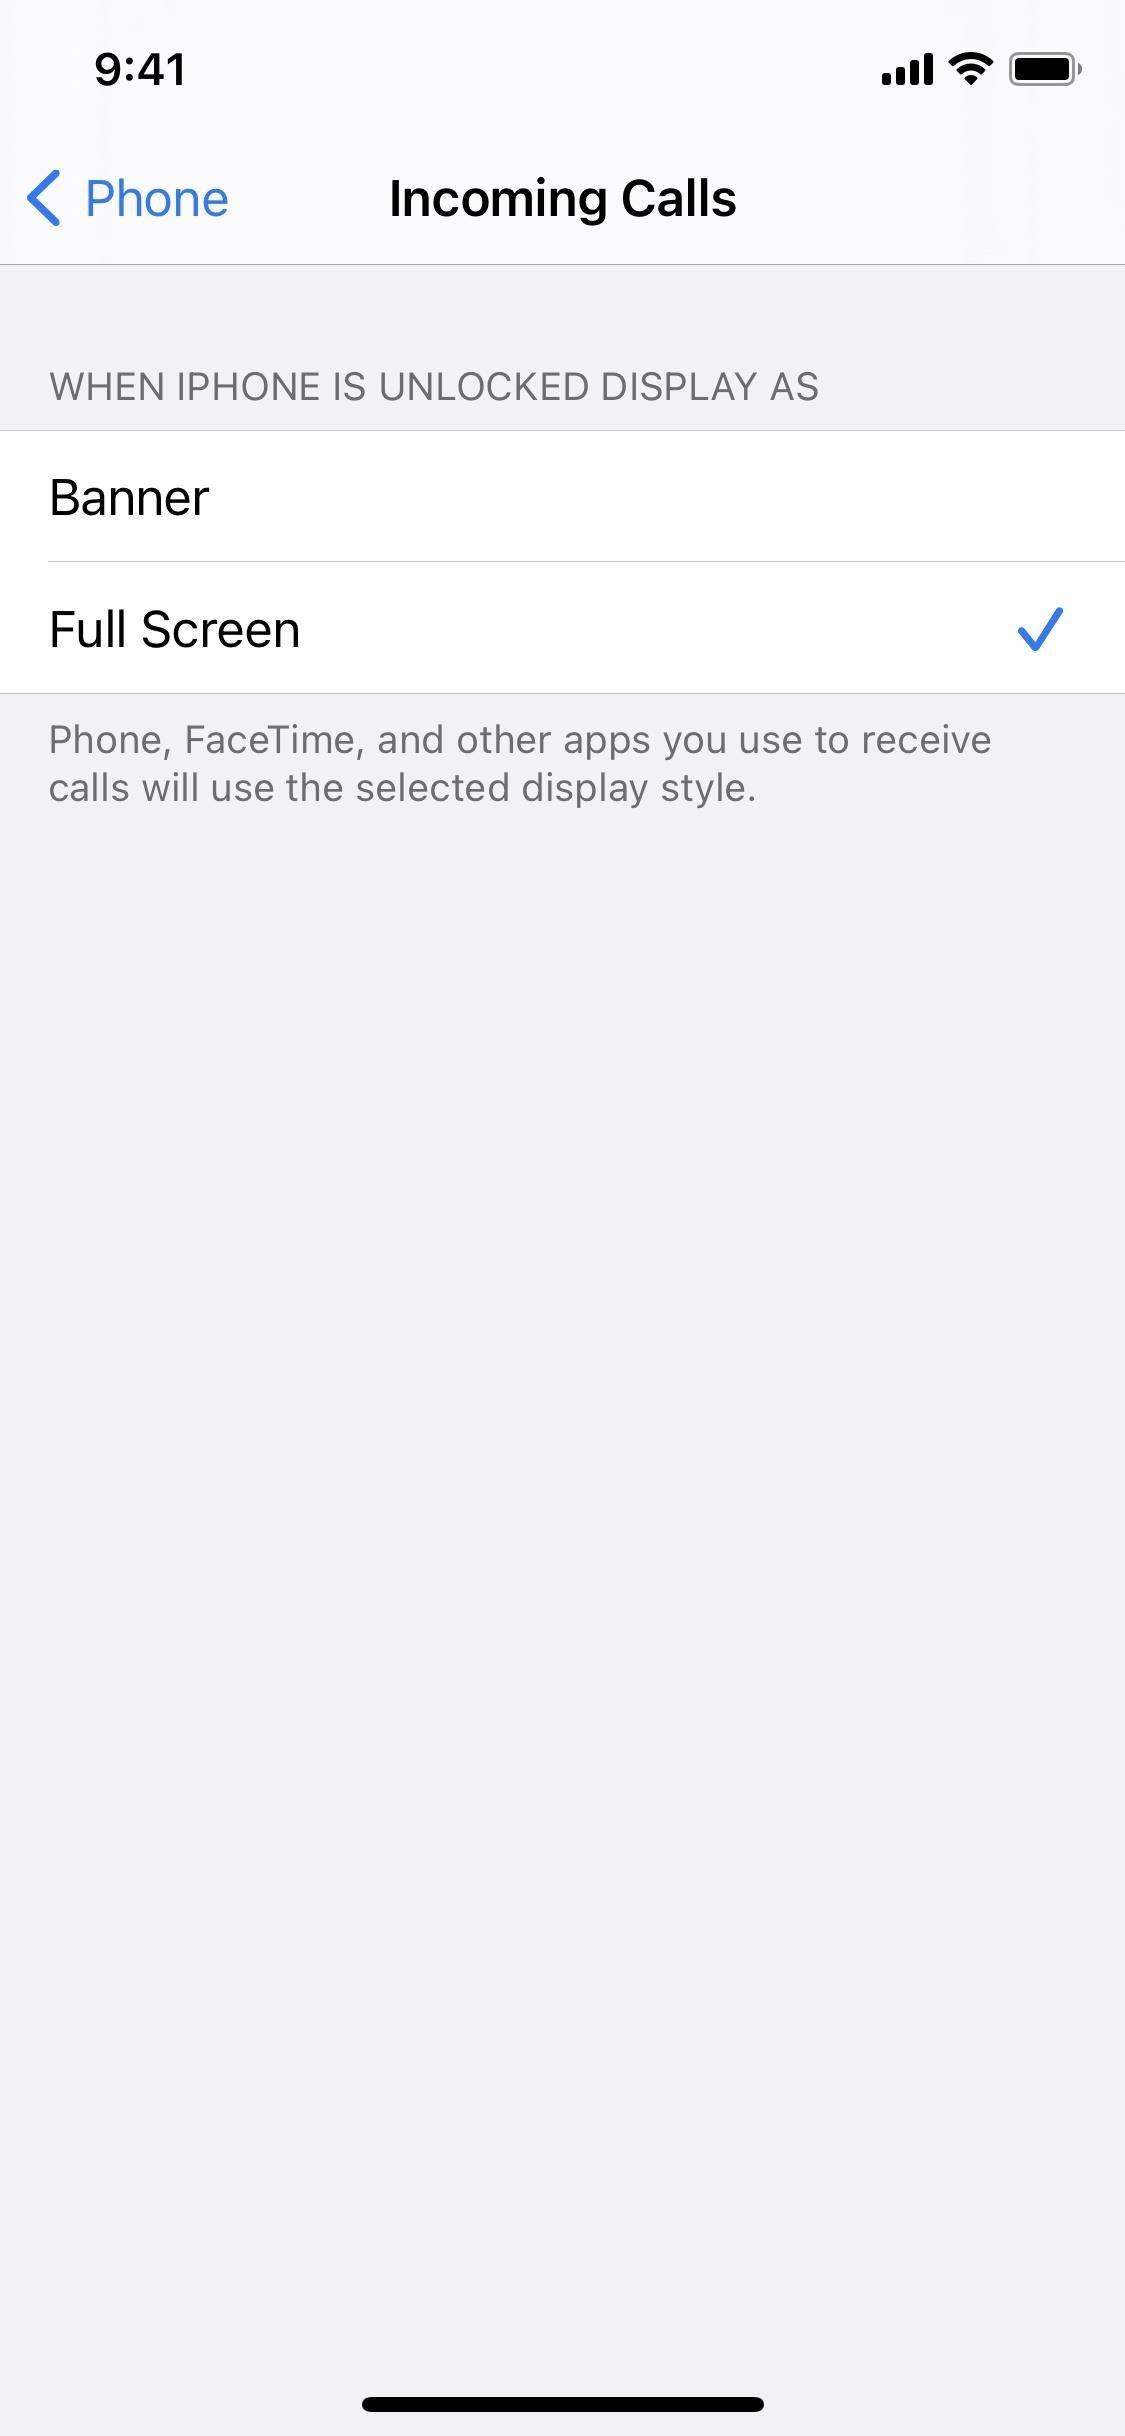 How to Bring Back Full-Screen Incoming Call Alerts for FaceTime, Phone & Other Calling Apps in iOS 14